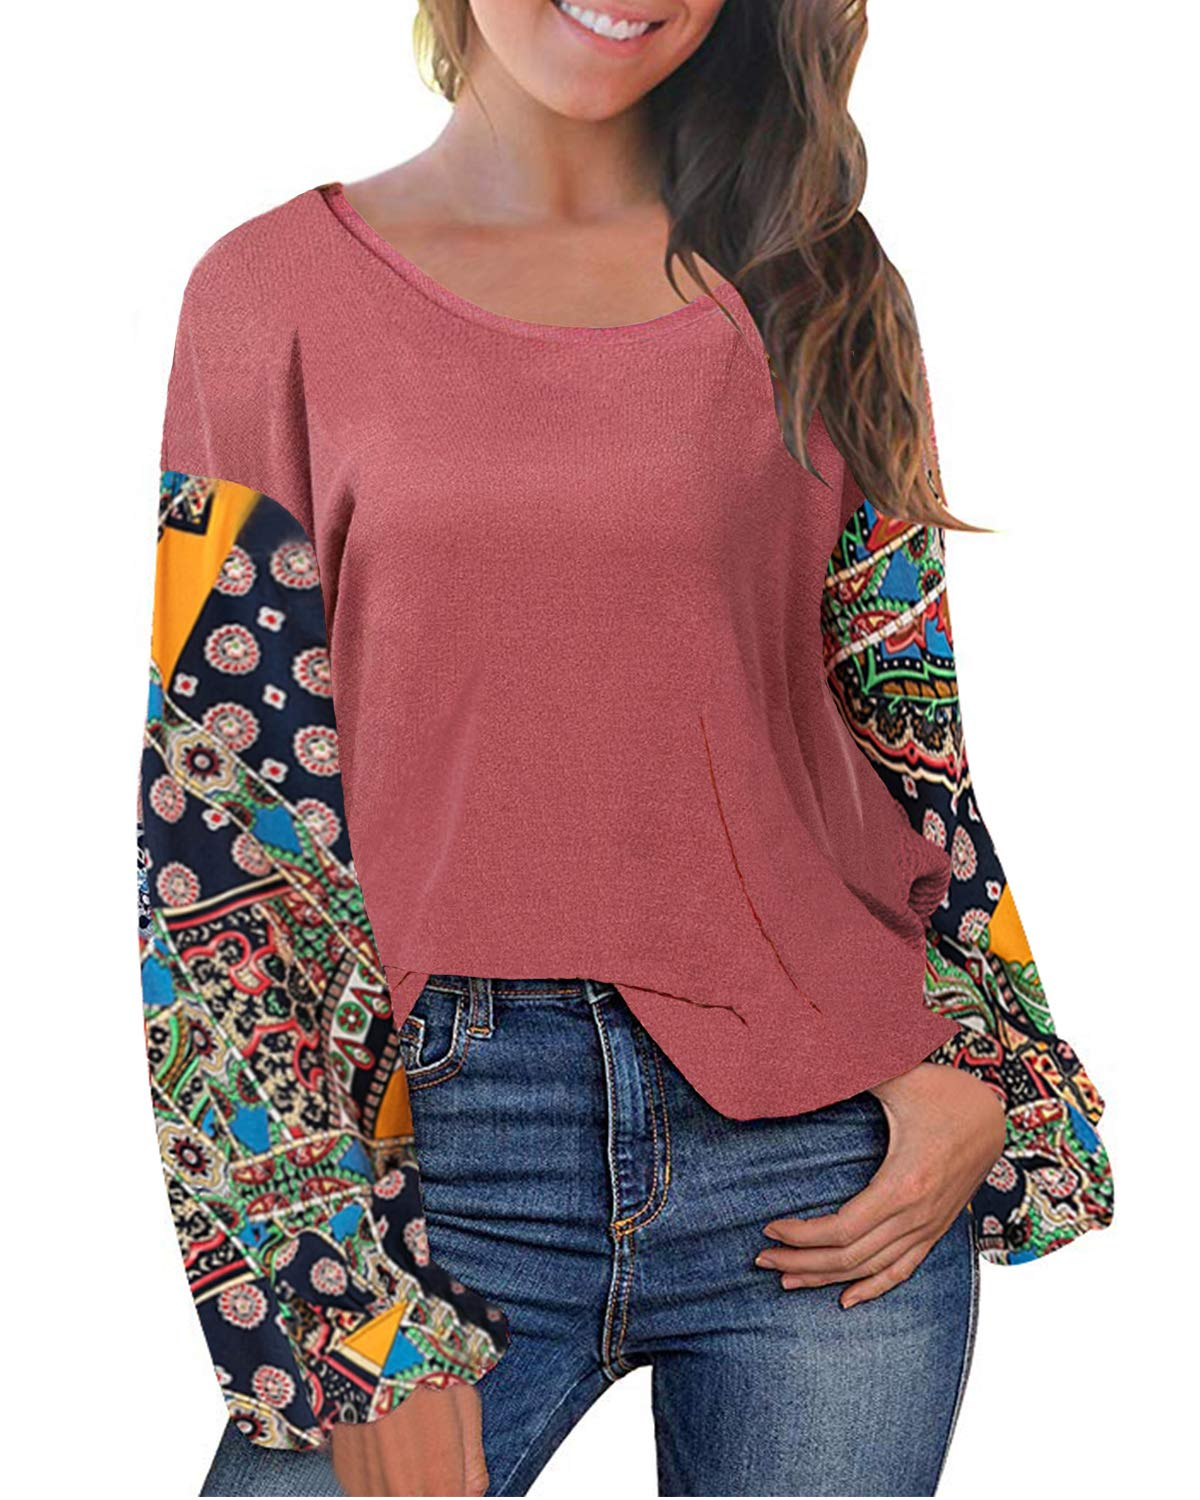 LeMarnia Pullover Sweatshirts for Women Long Sleeve, Ladies Floral Print Crewneck Patchwork Tops A-Line Slim Fit Casual Knit Work Shirts Pink M